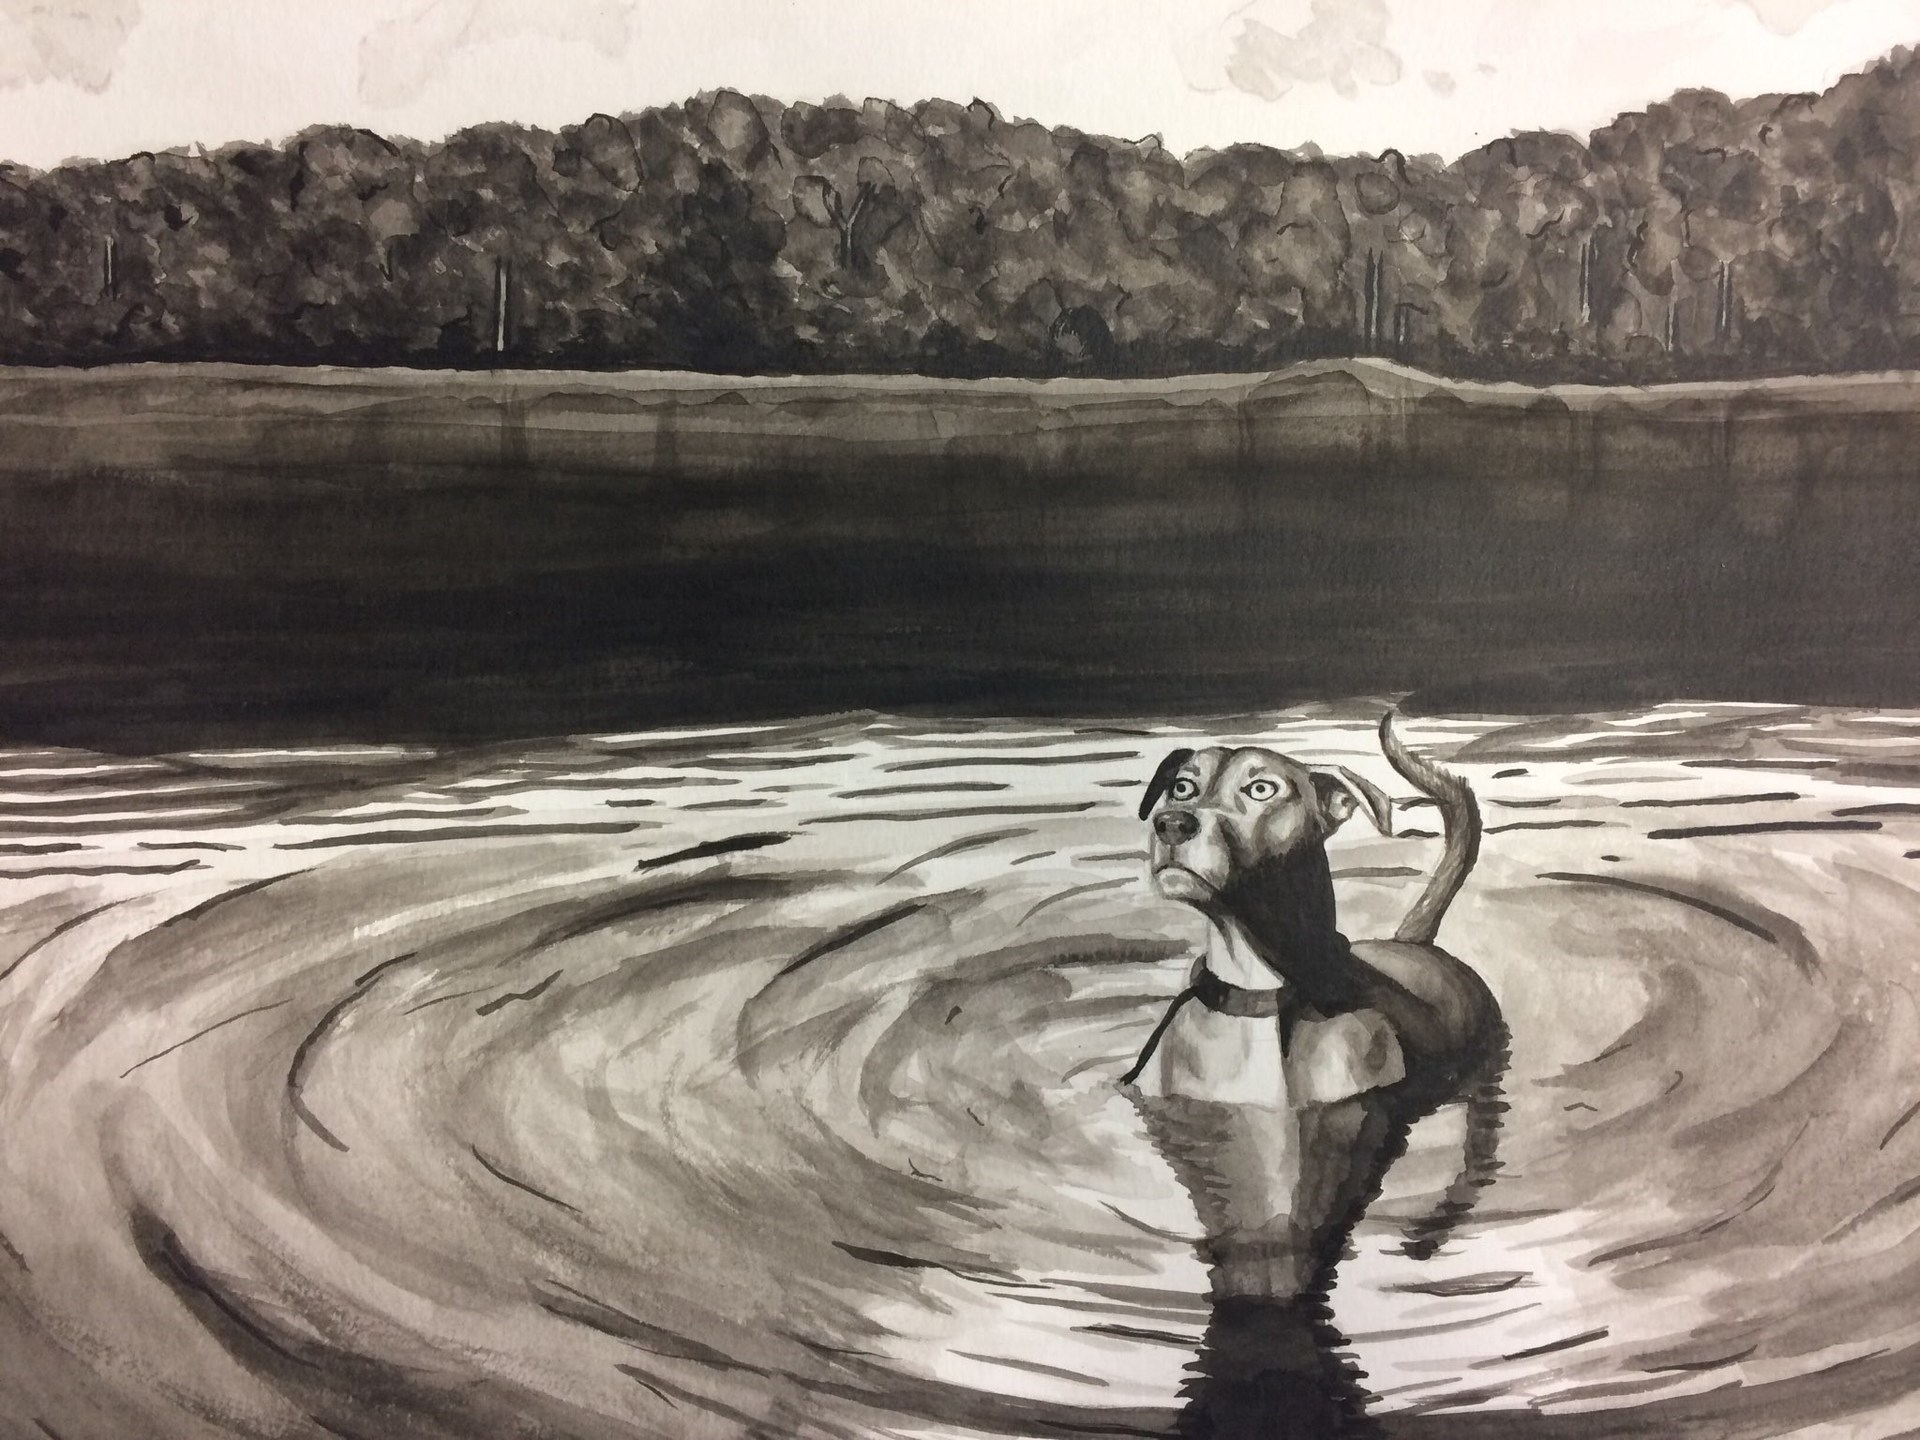 Painting of dog in water